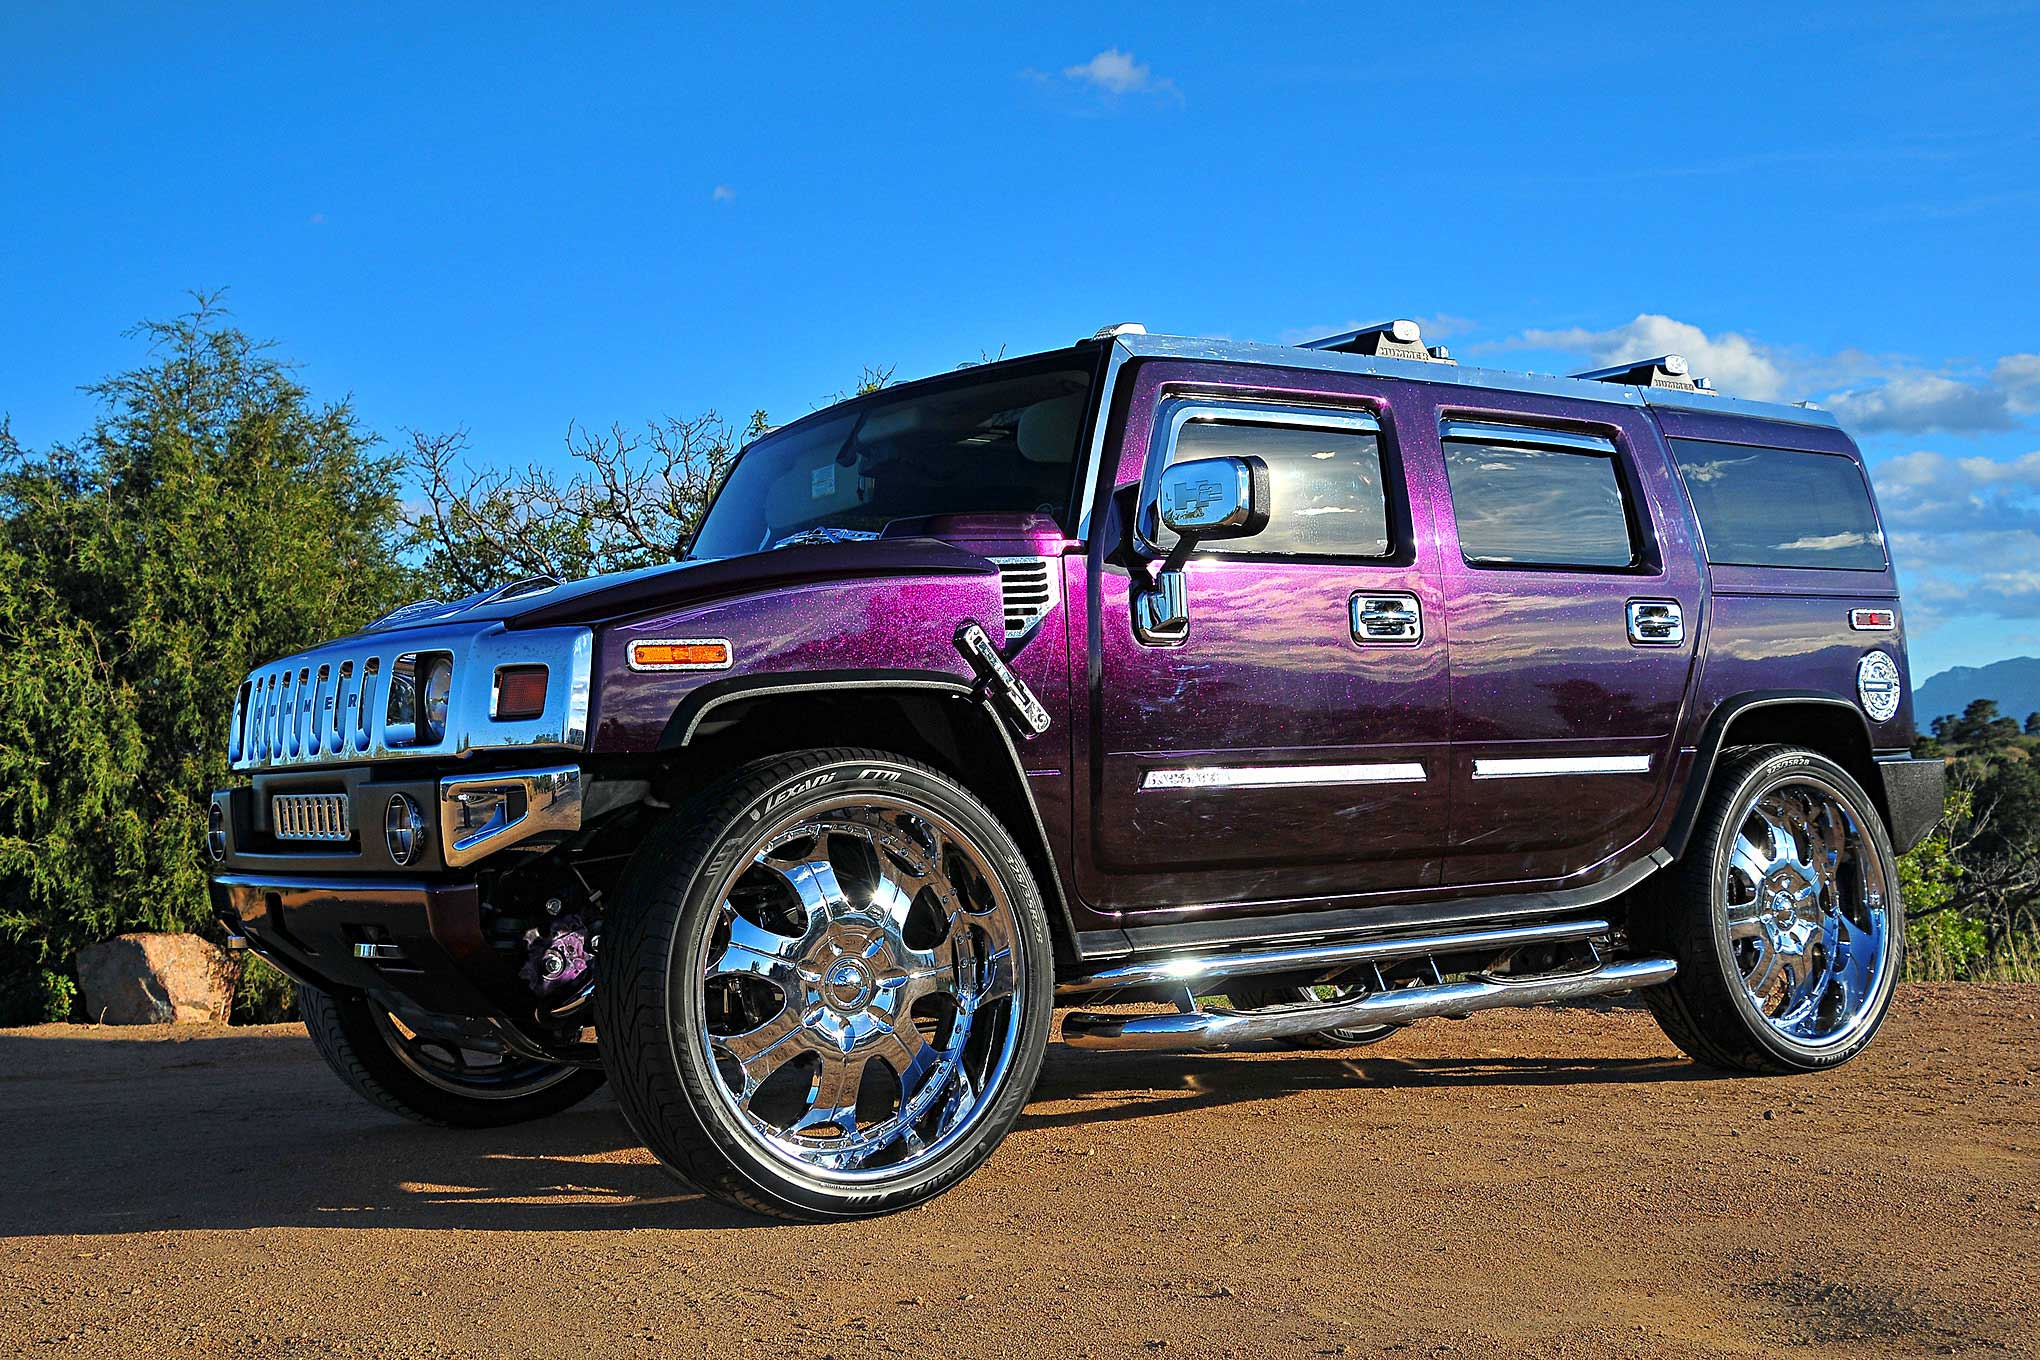 2005 Hummer H2 - Anything is Possible